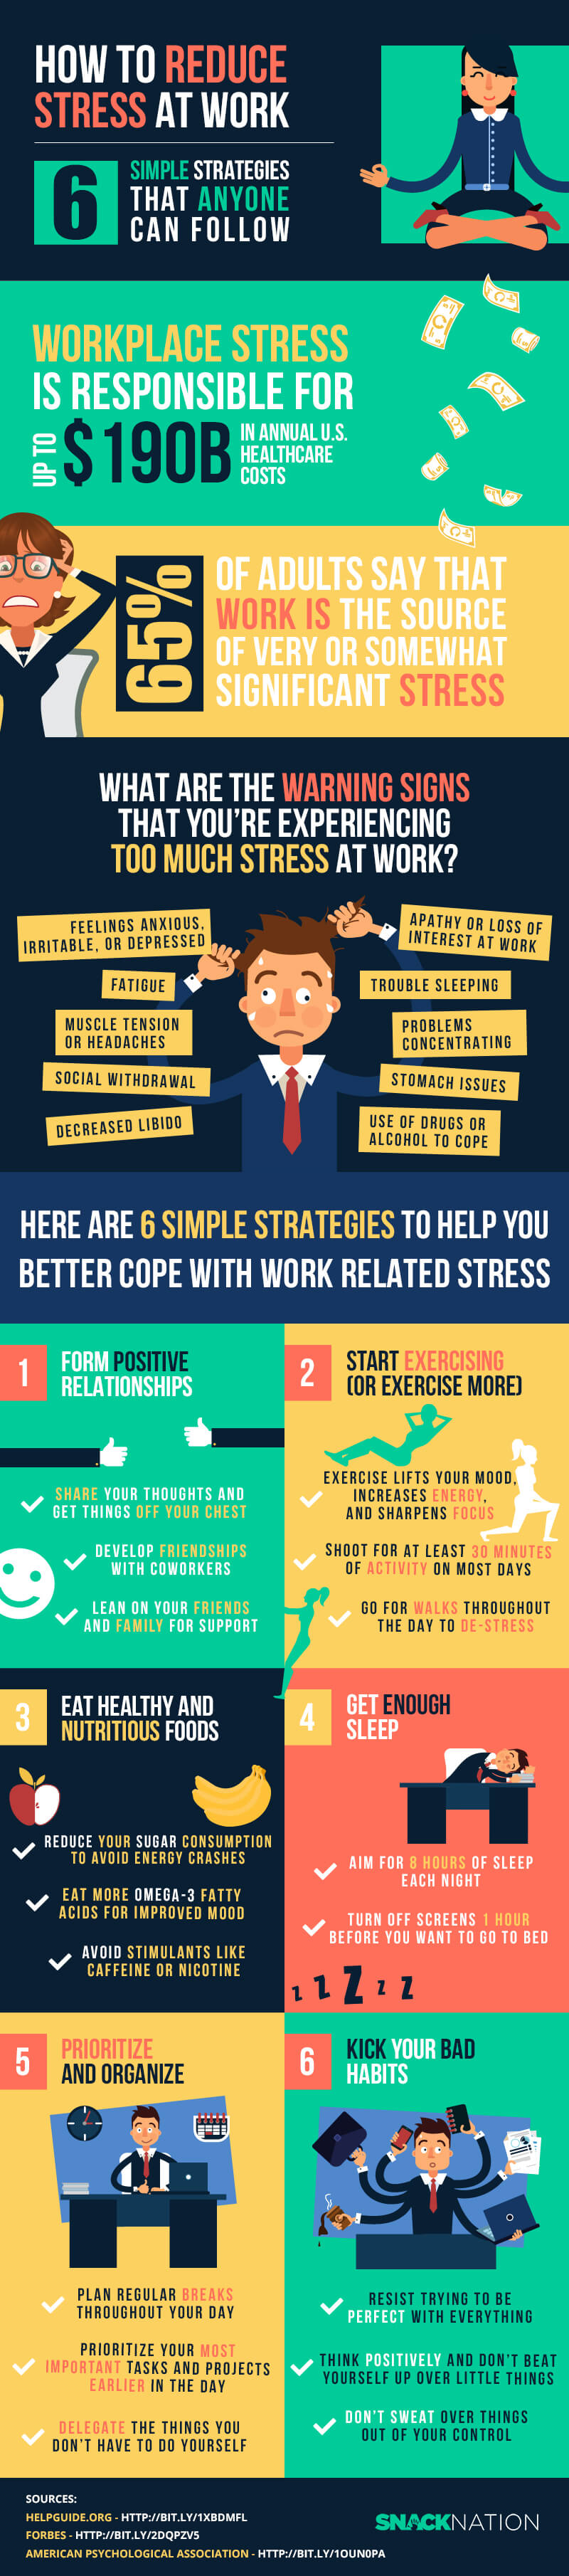 How to reduce work stress - infographic